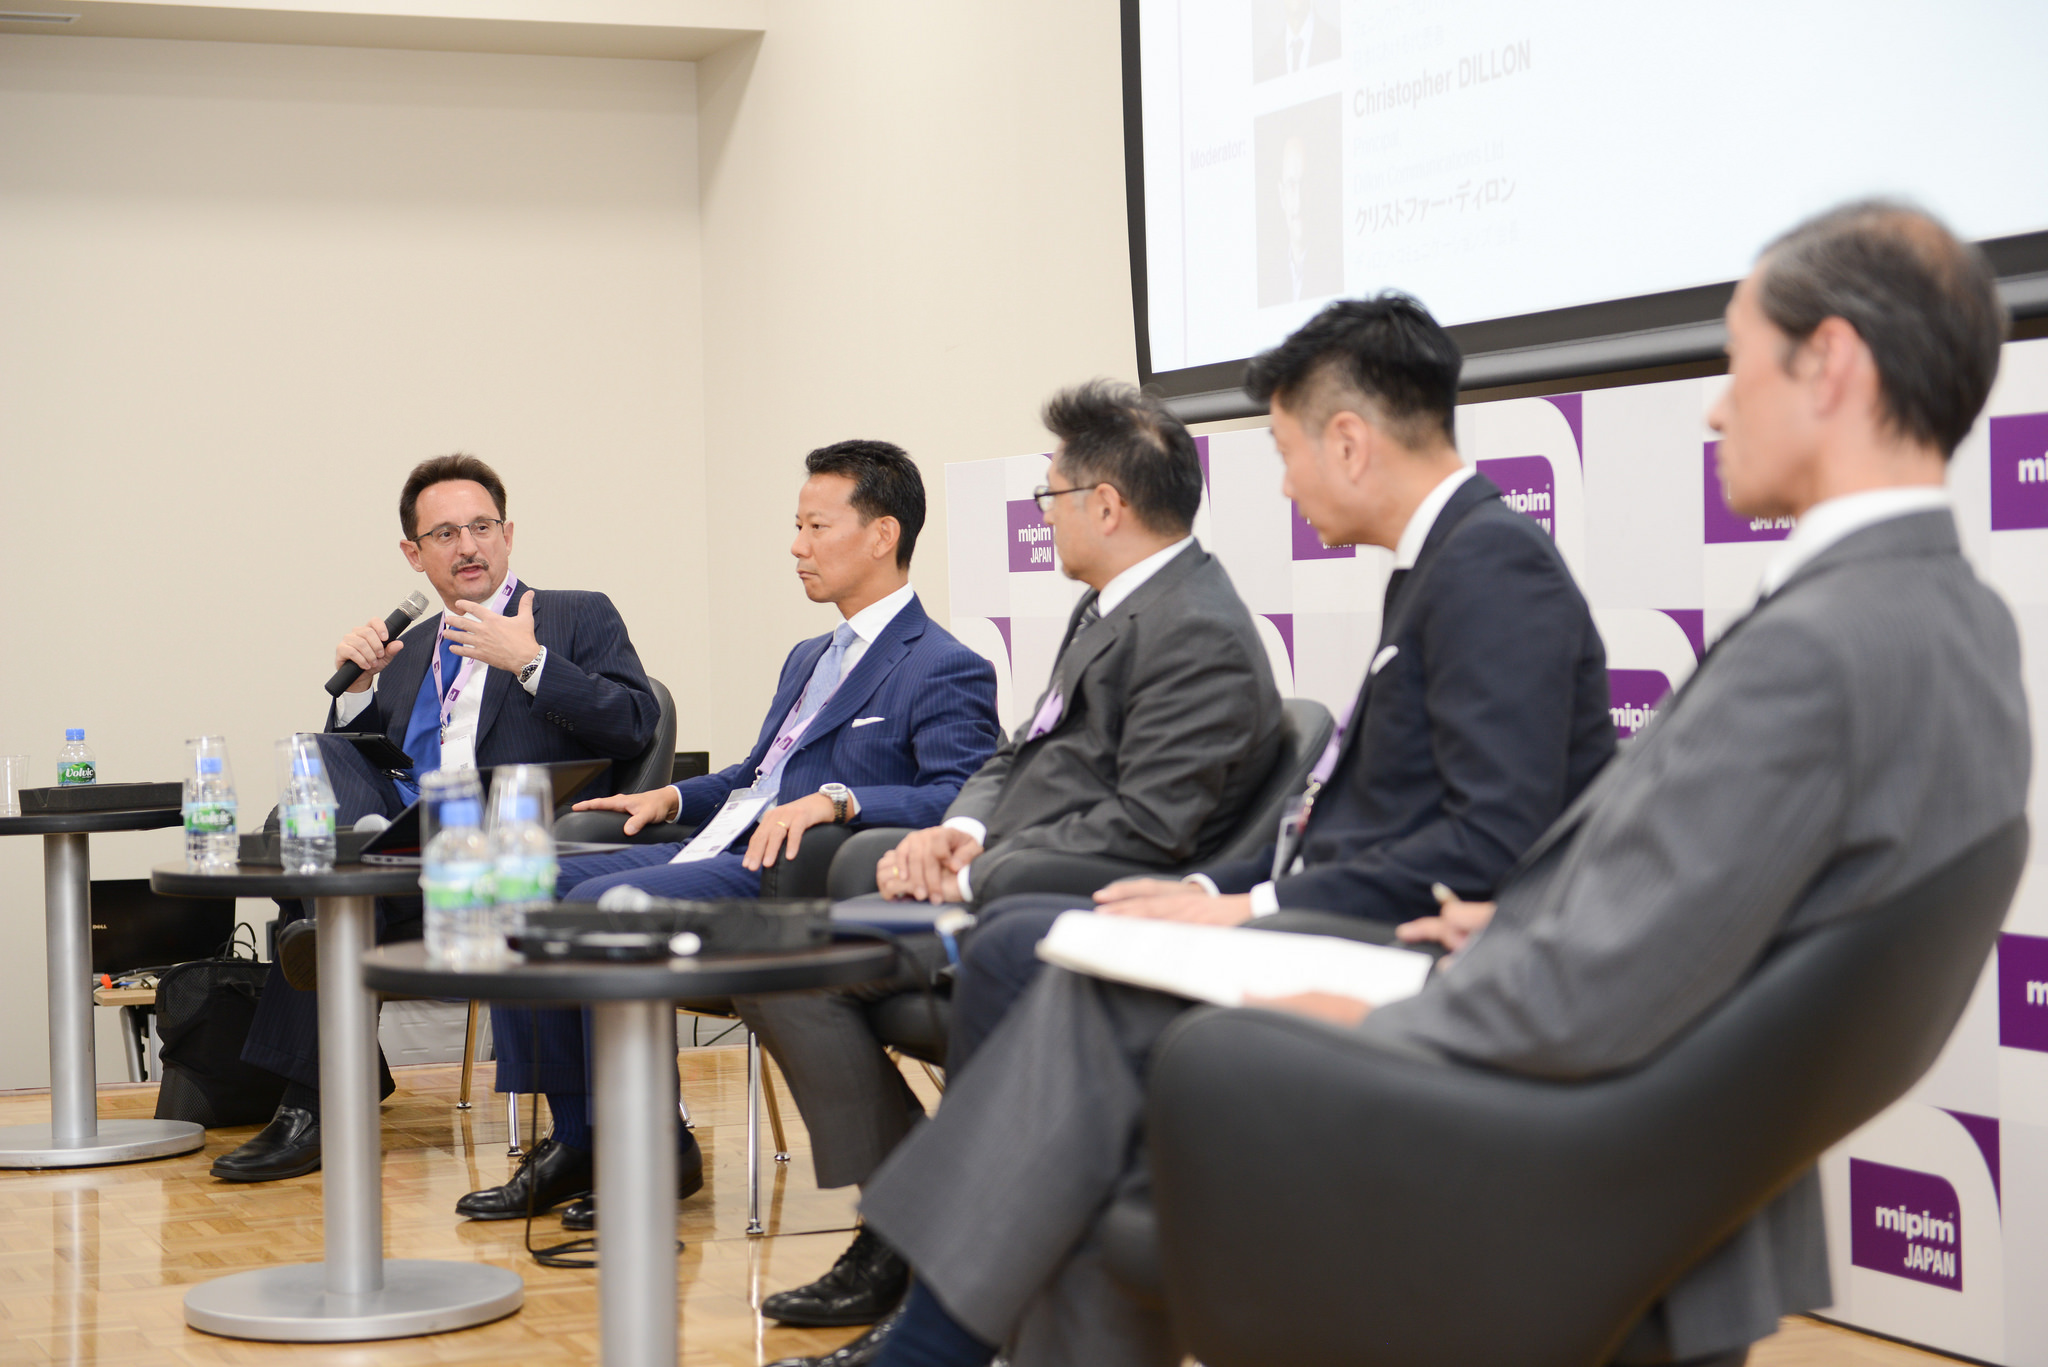 Christopher Dillon moderates a panel discussion at MIPIM Japan